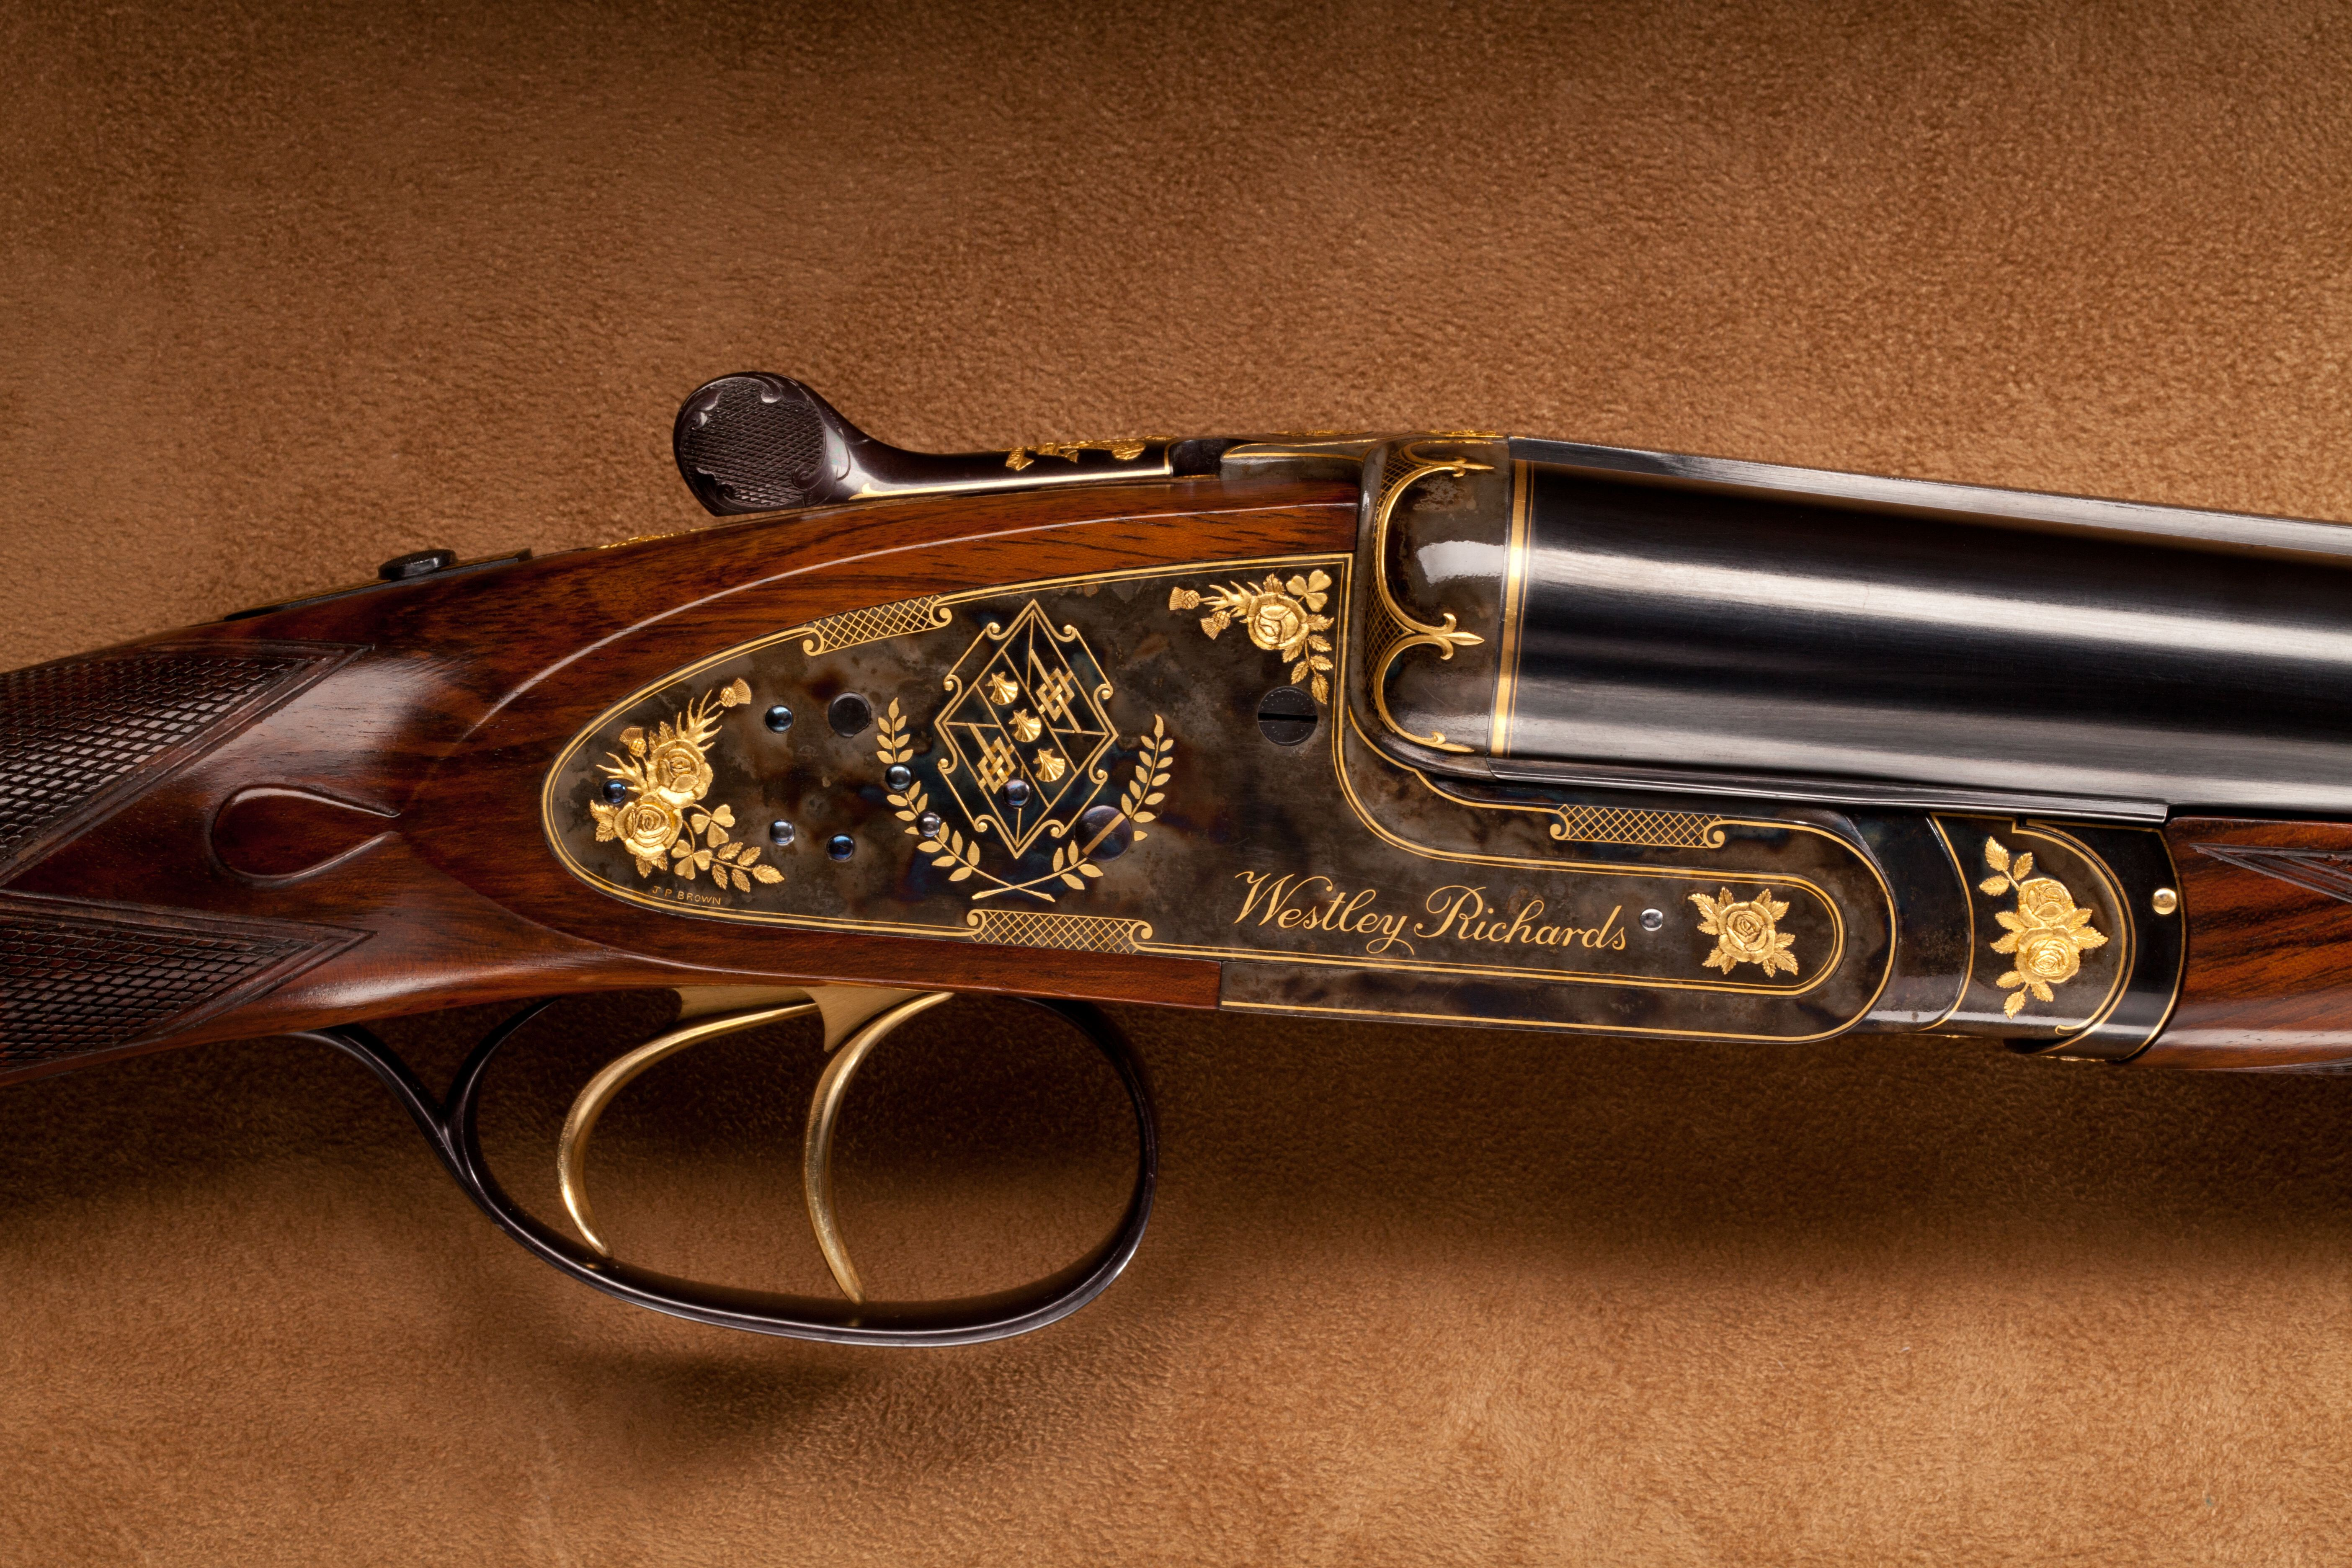 Westley Richards Side by Side Shotgun - 12 ga.